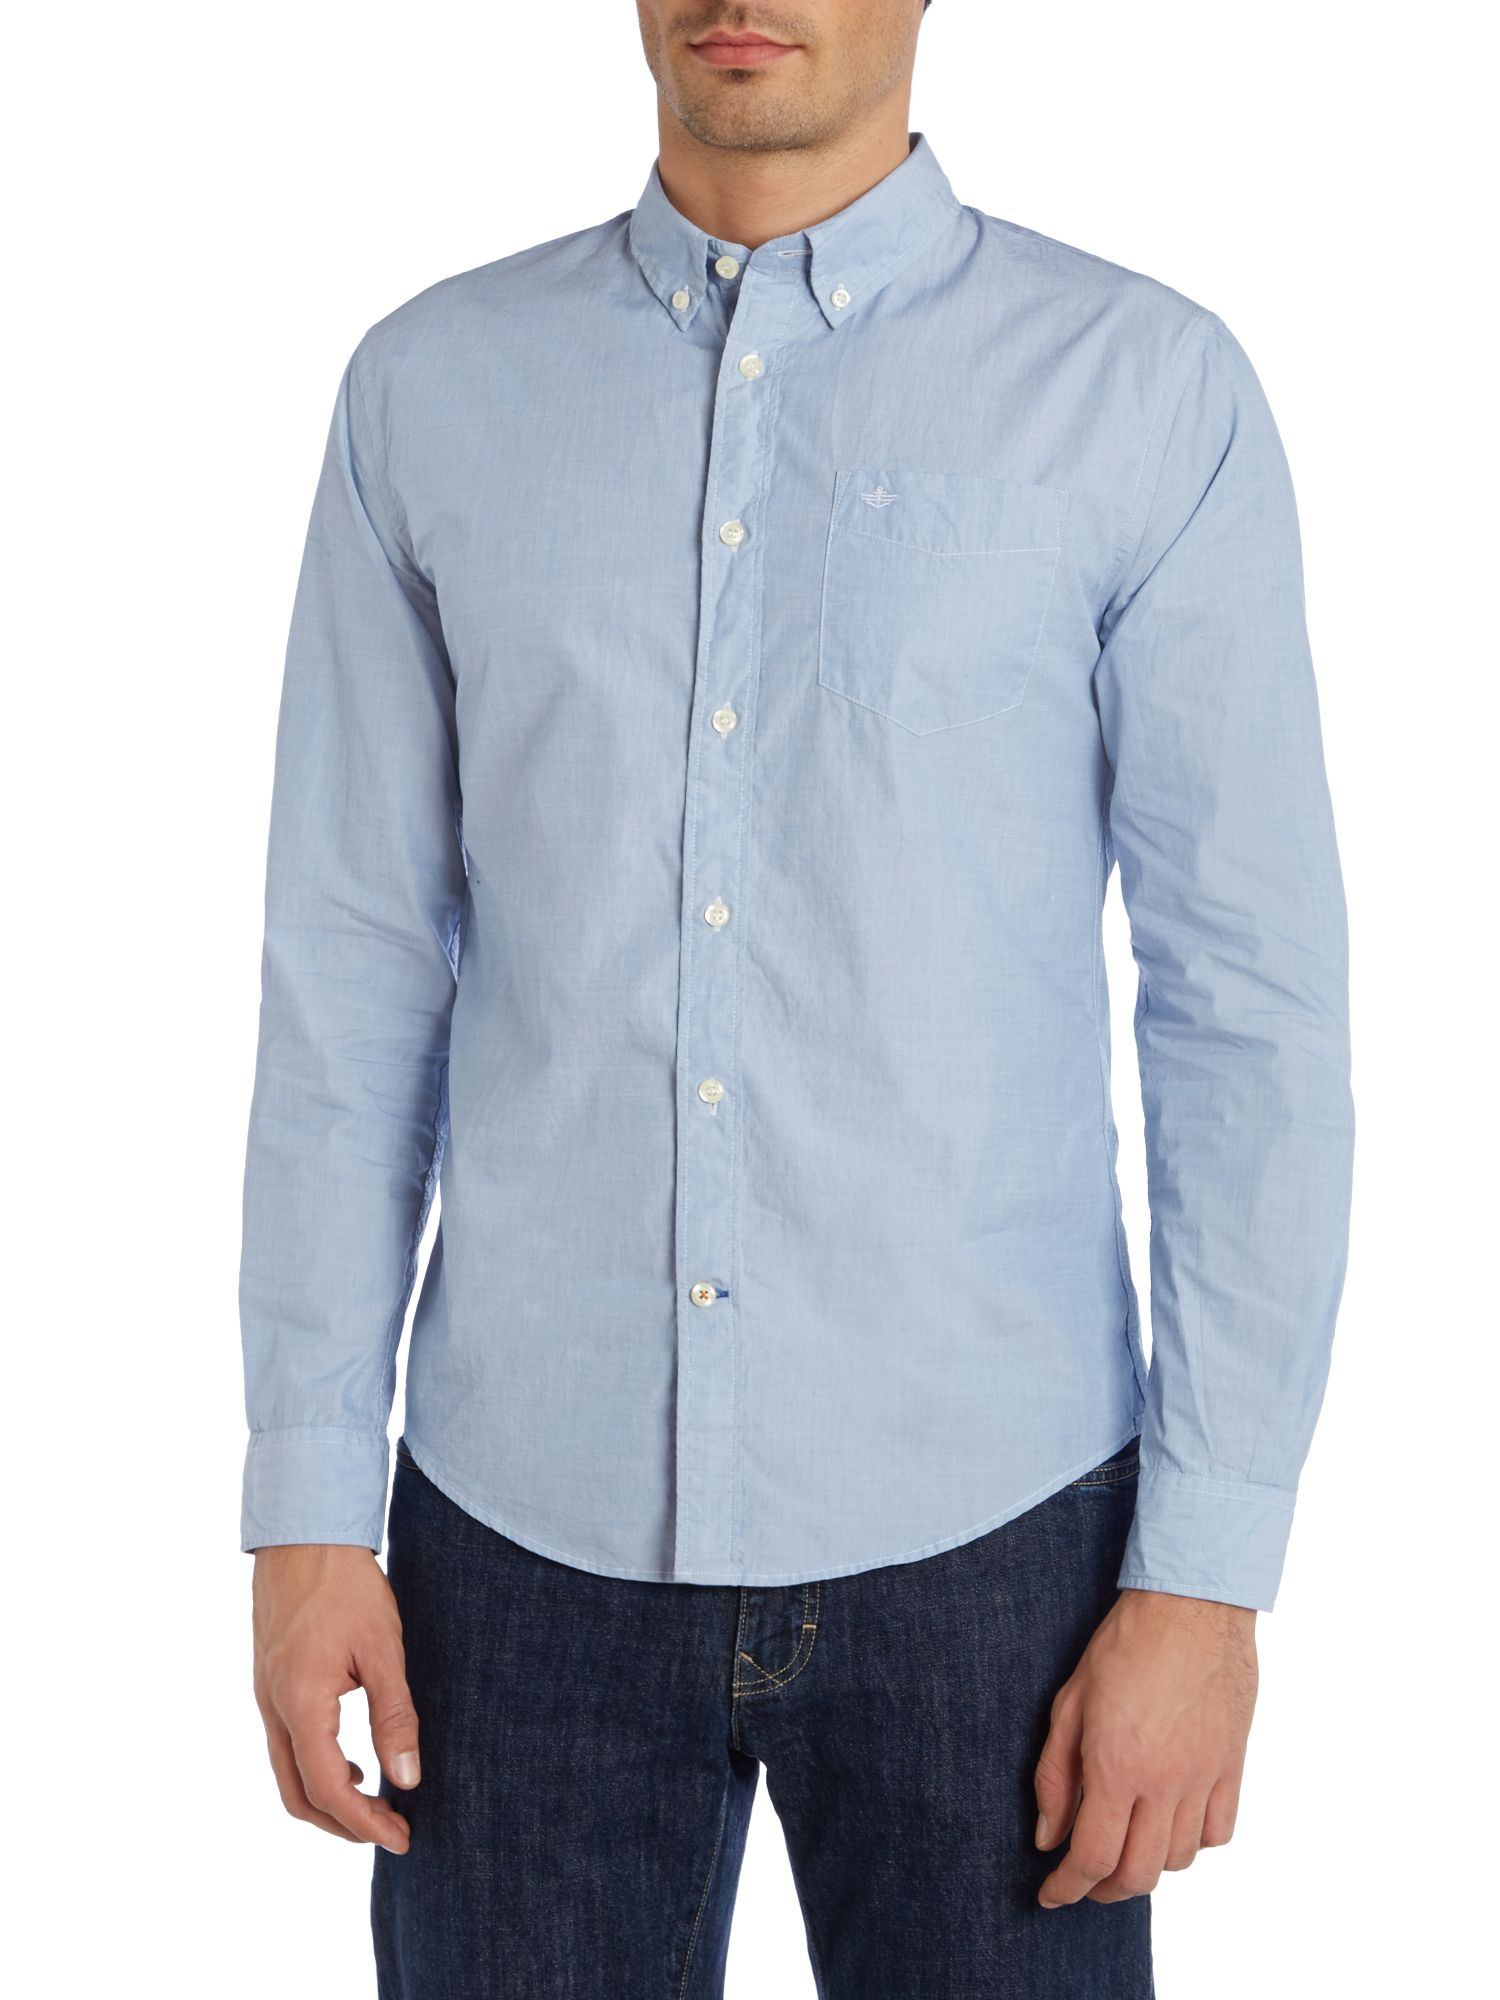 Dockers Blue Cotton Oxford Shirt With Button Down Collar